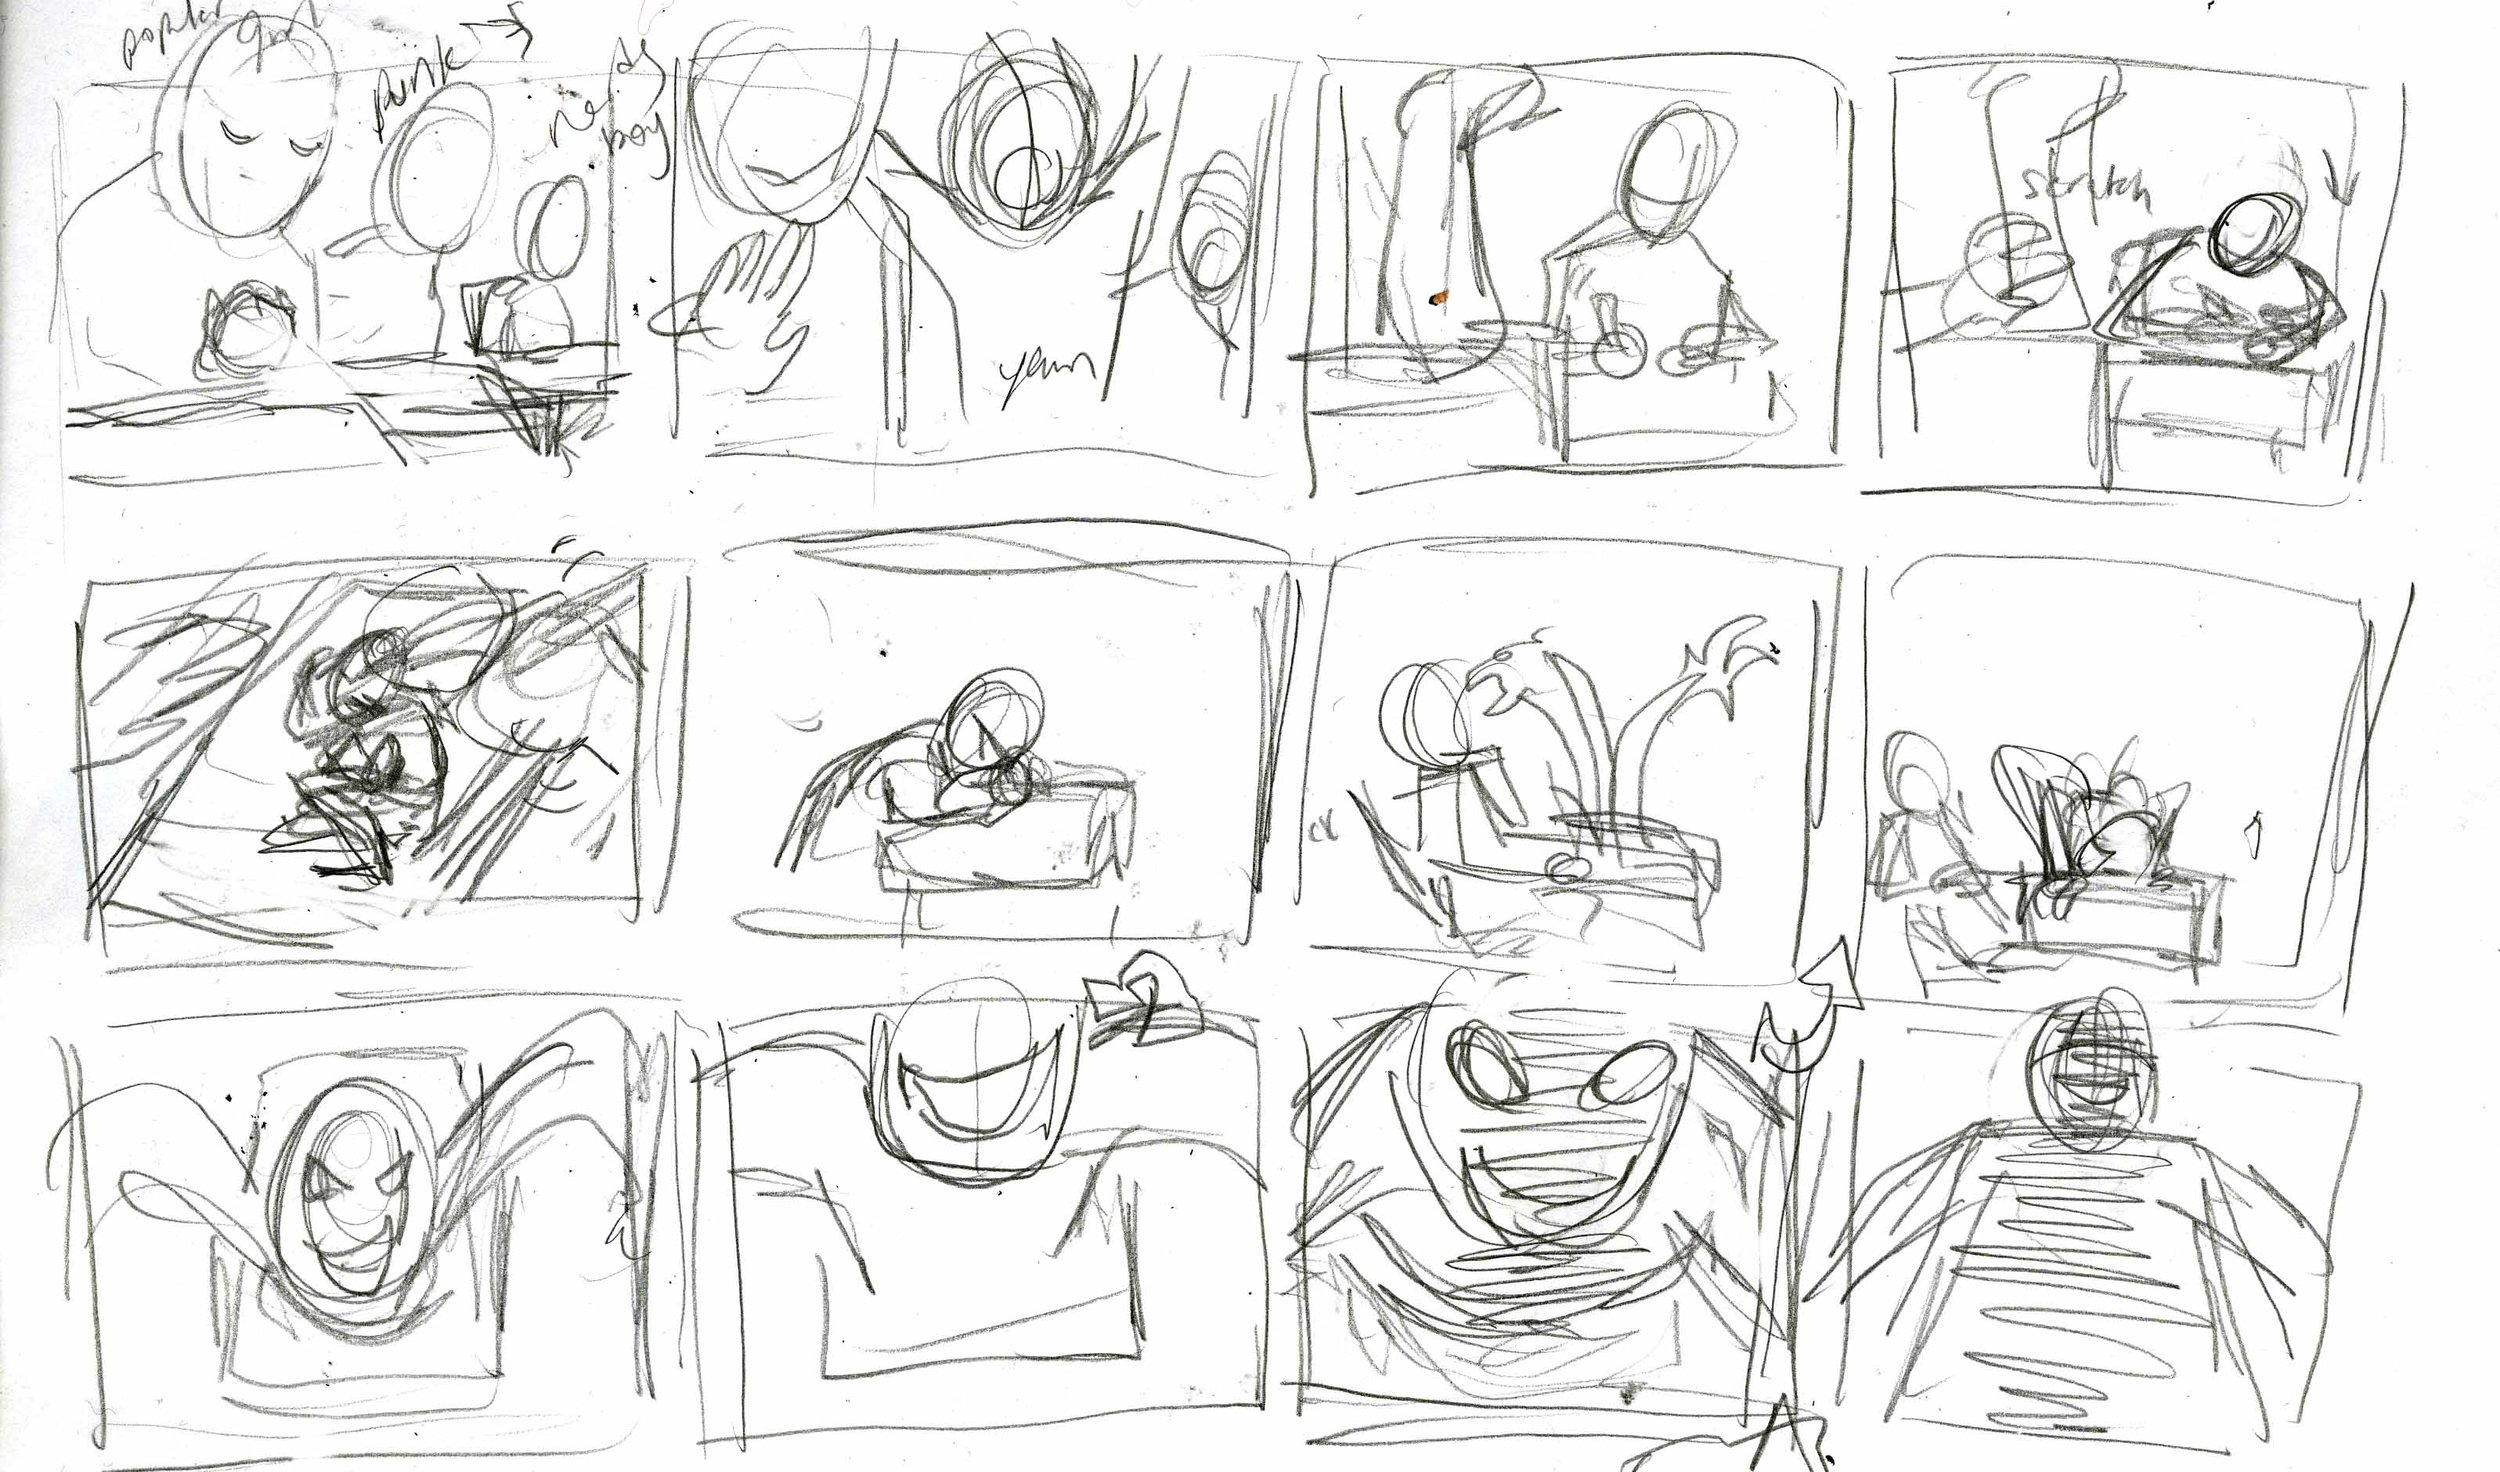 Drawn to Death Animation storyboard 1.jpg